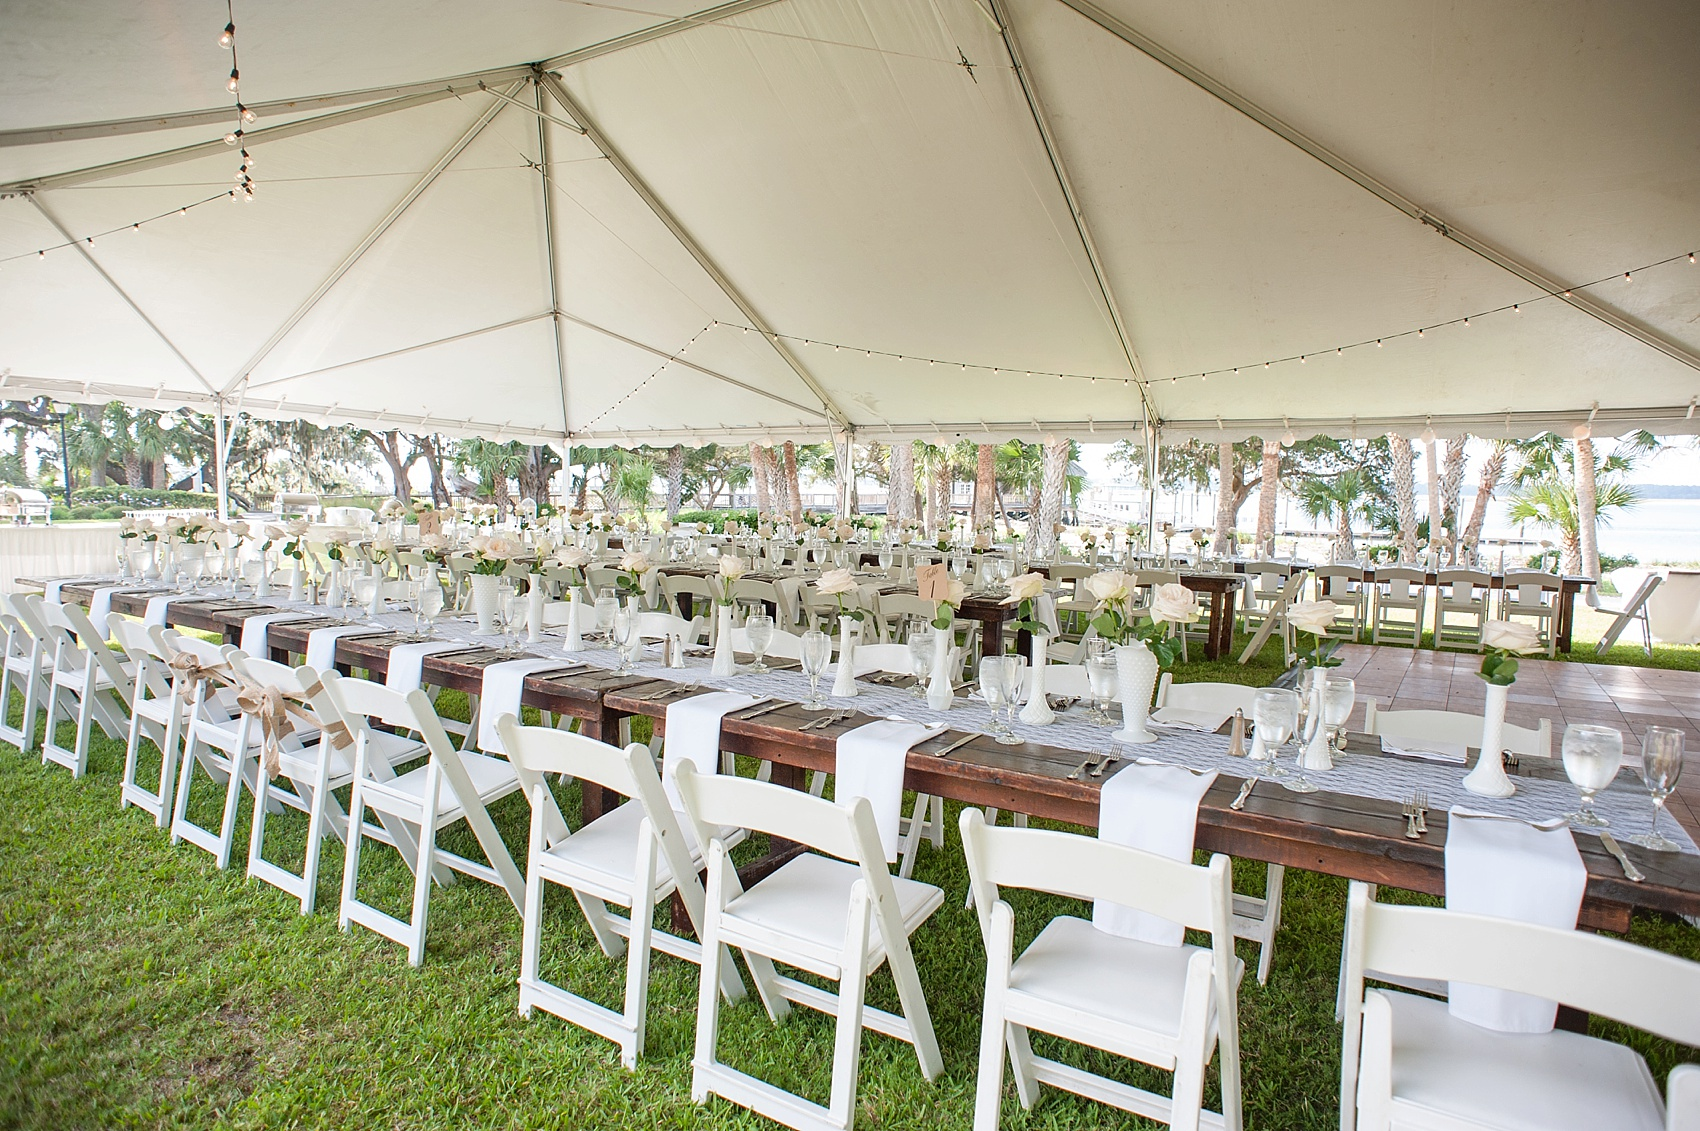 Tented wedding reception for a Haig Point wedding in South Carolina, off the coast of Hilton Head. Farm tables and white roses and vases complete the look. Photos by Mikkel Paige Photography.